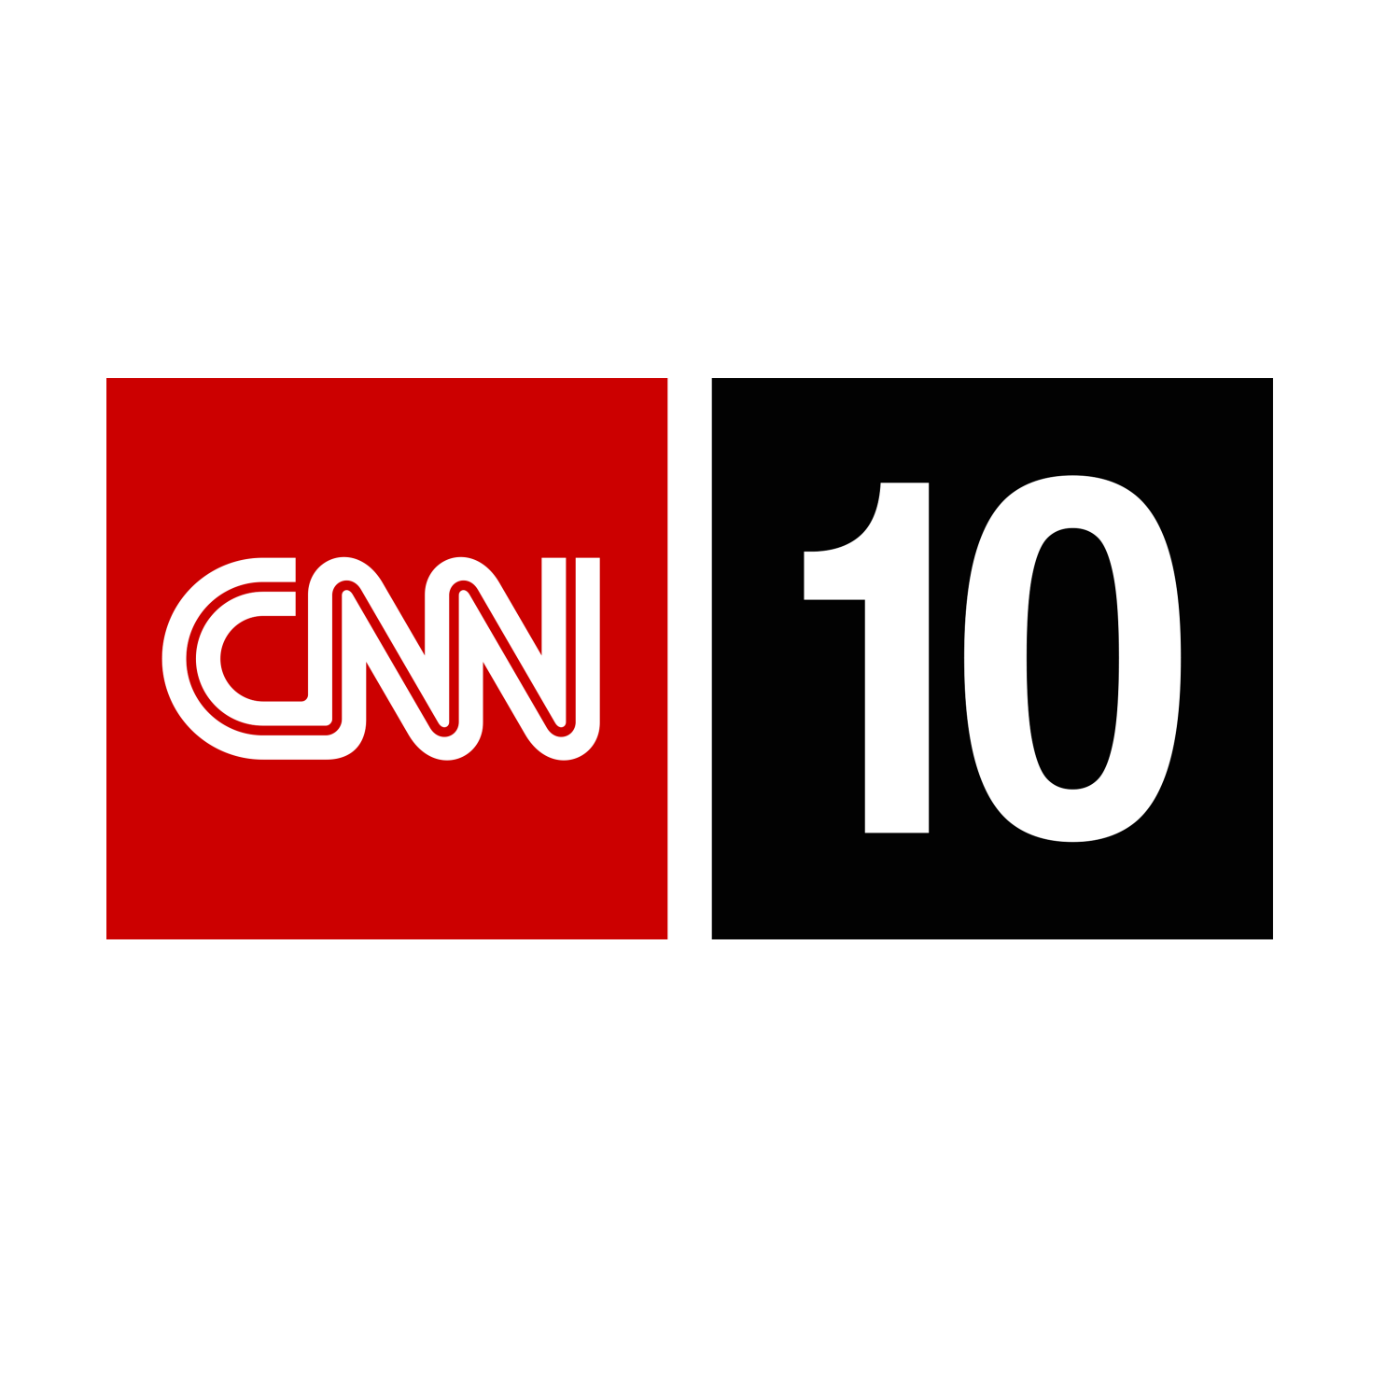 CNN Student News - March 19, 2013